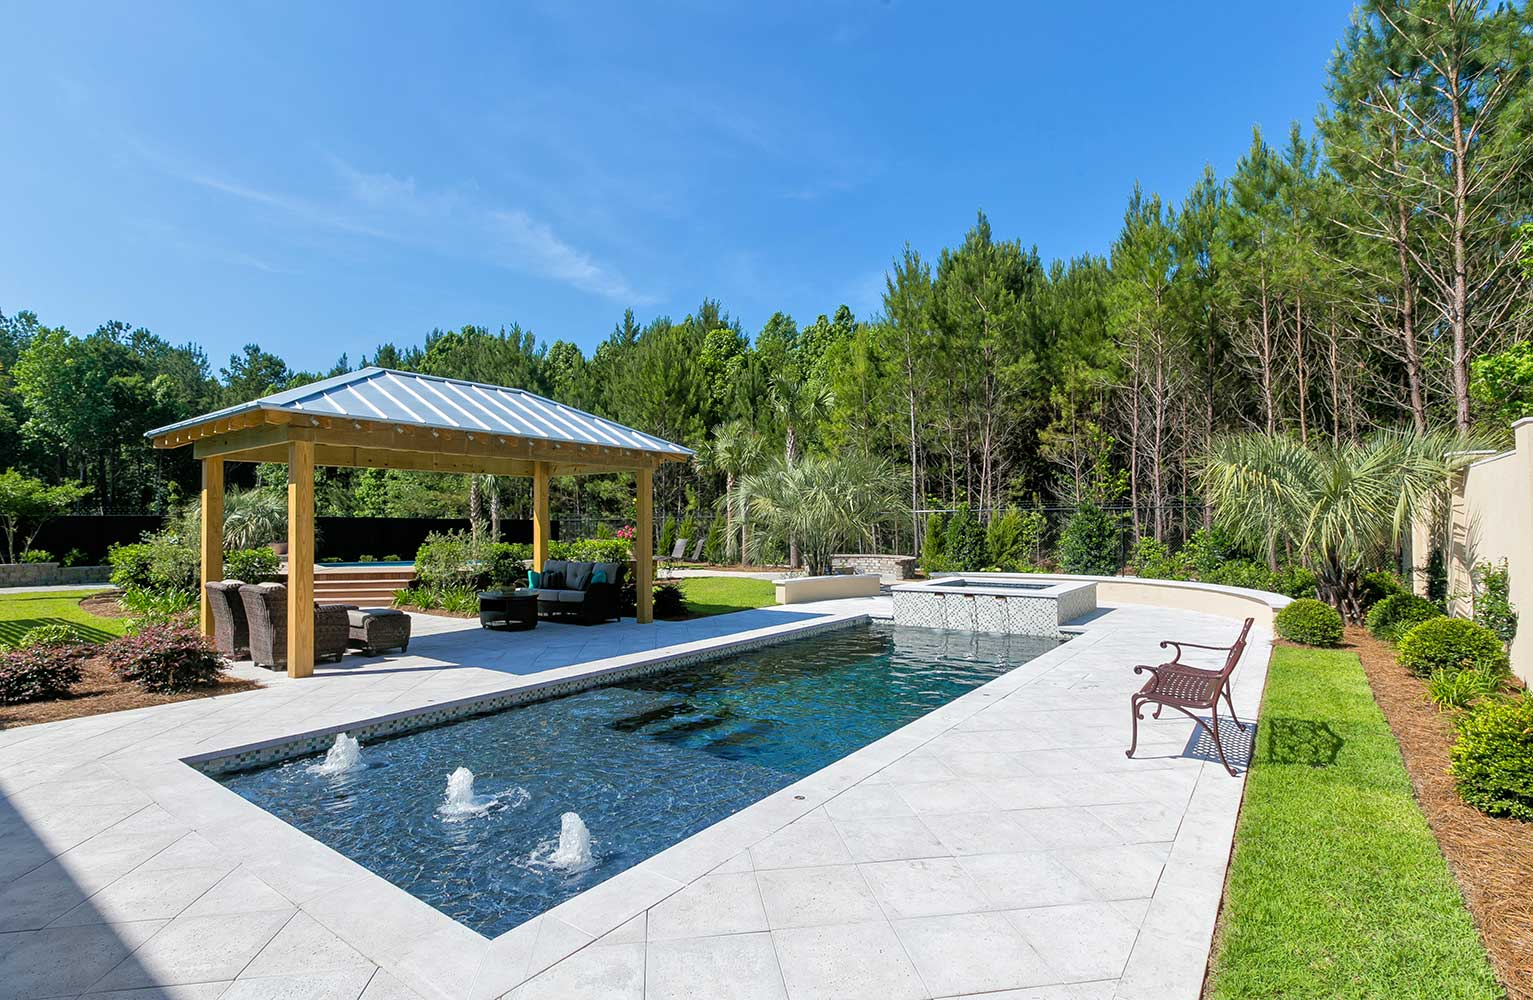 Design services aqua blue pools for Pool design services